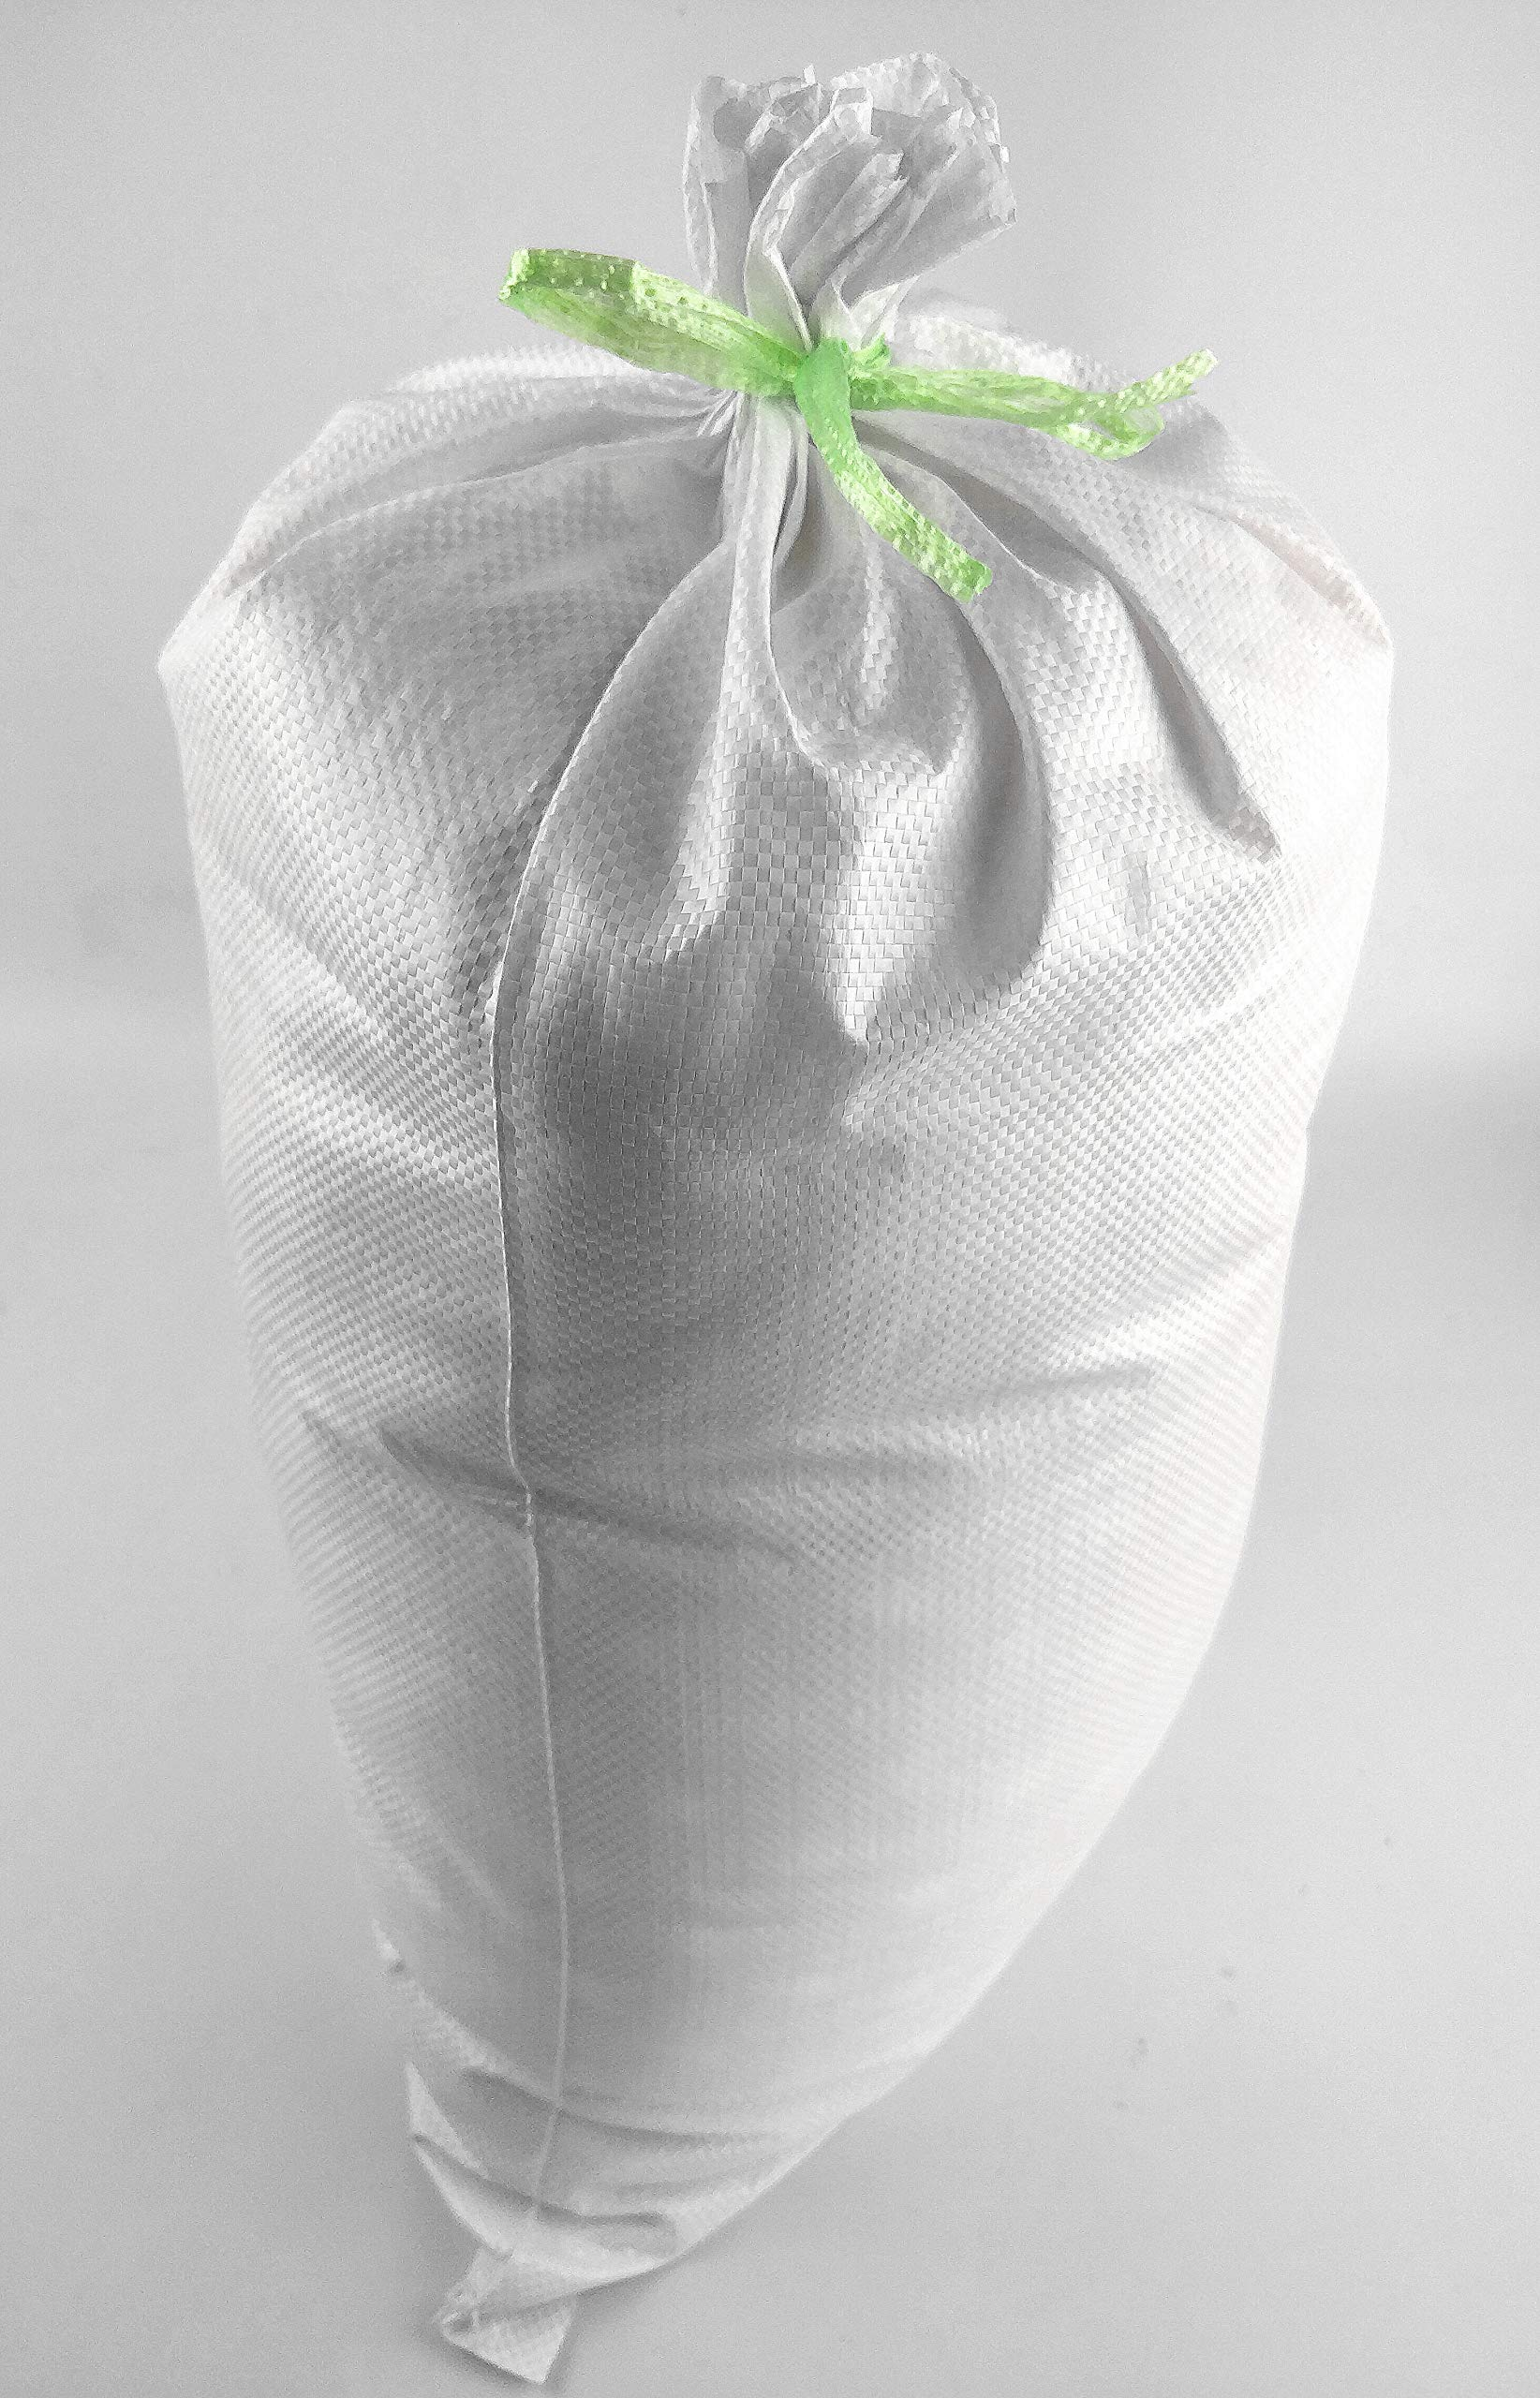 Sand Bags 14'' x 26'' Empty White Woven Polypropylene Sandbags Ties Included, 5 Pack/20 Pack (20) by Relarr